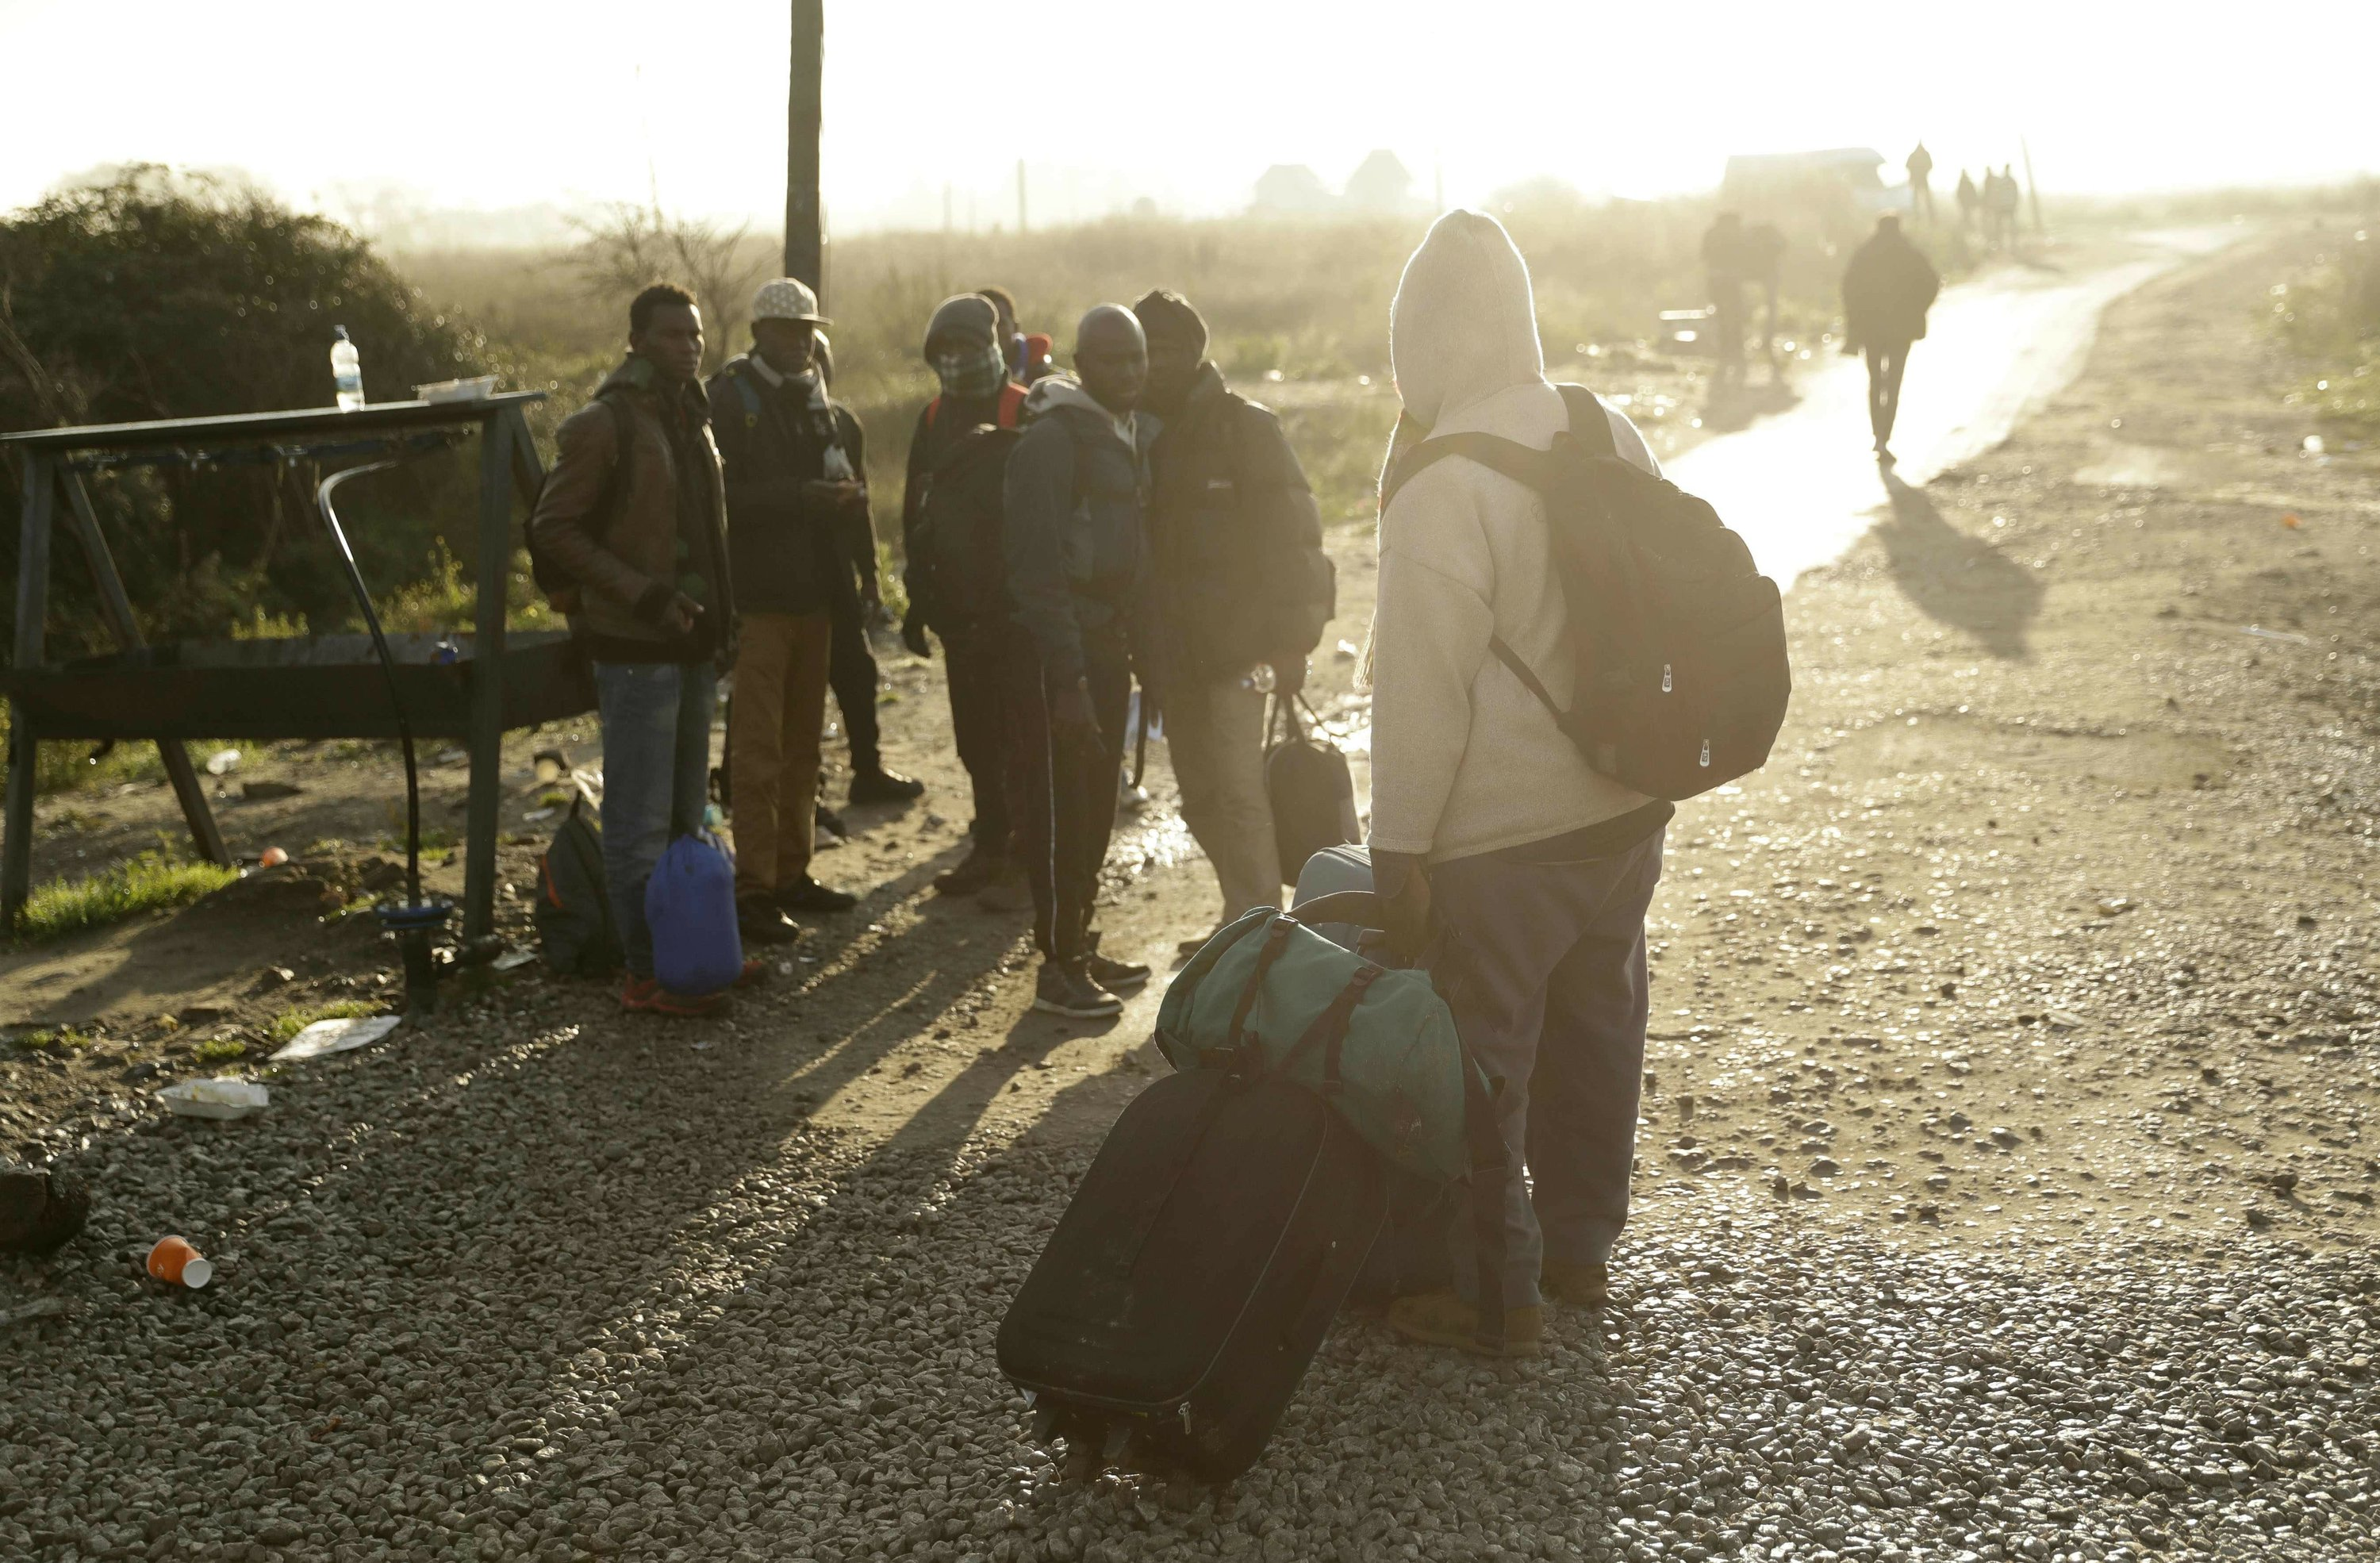 With French camp razed, moved migrants try to adapt again